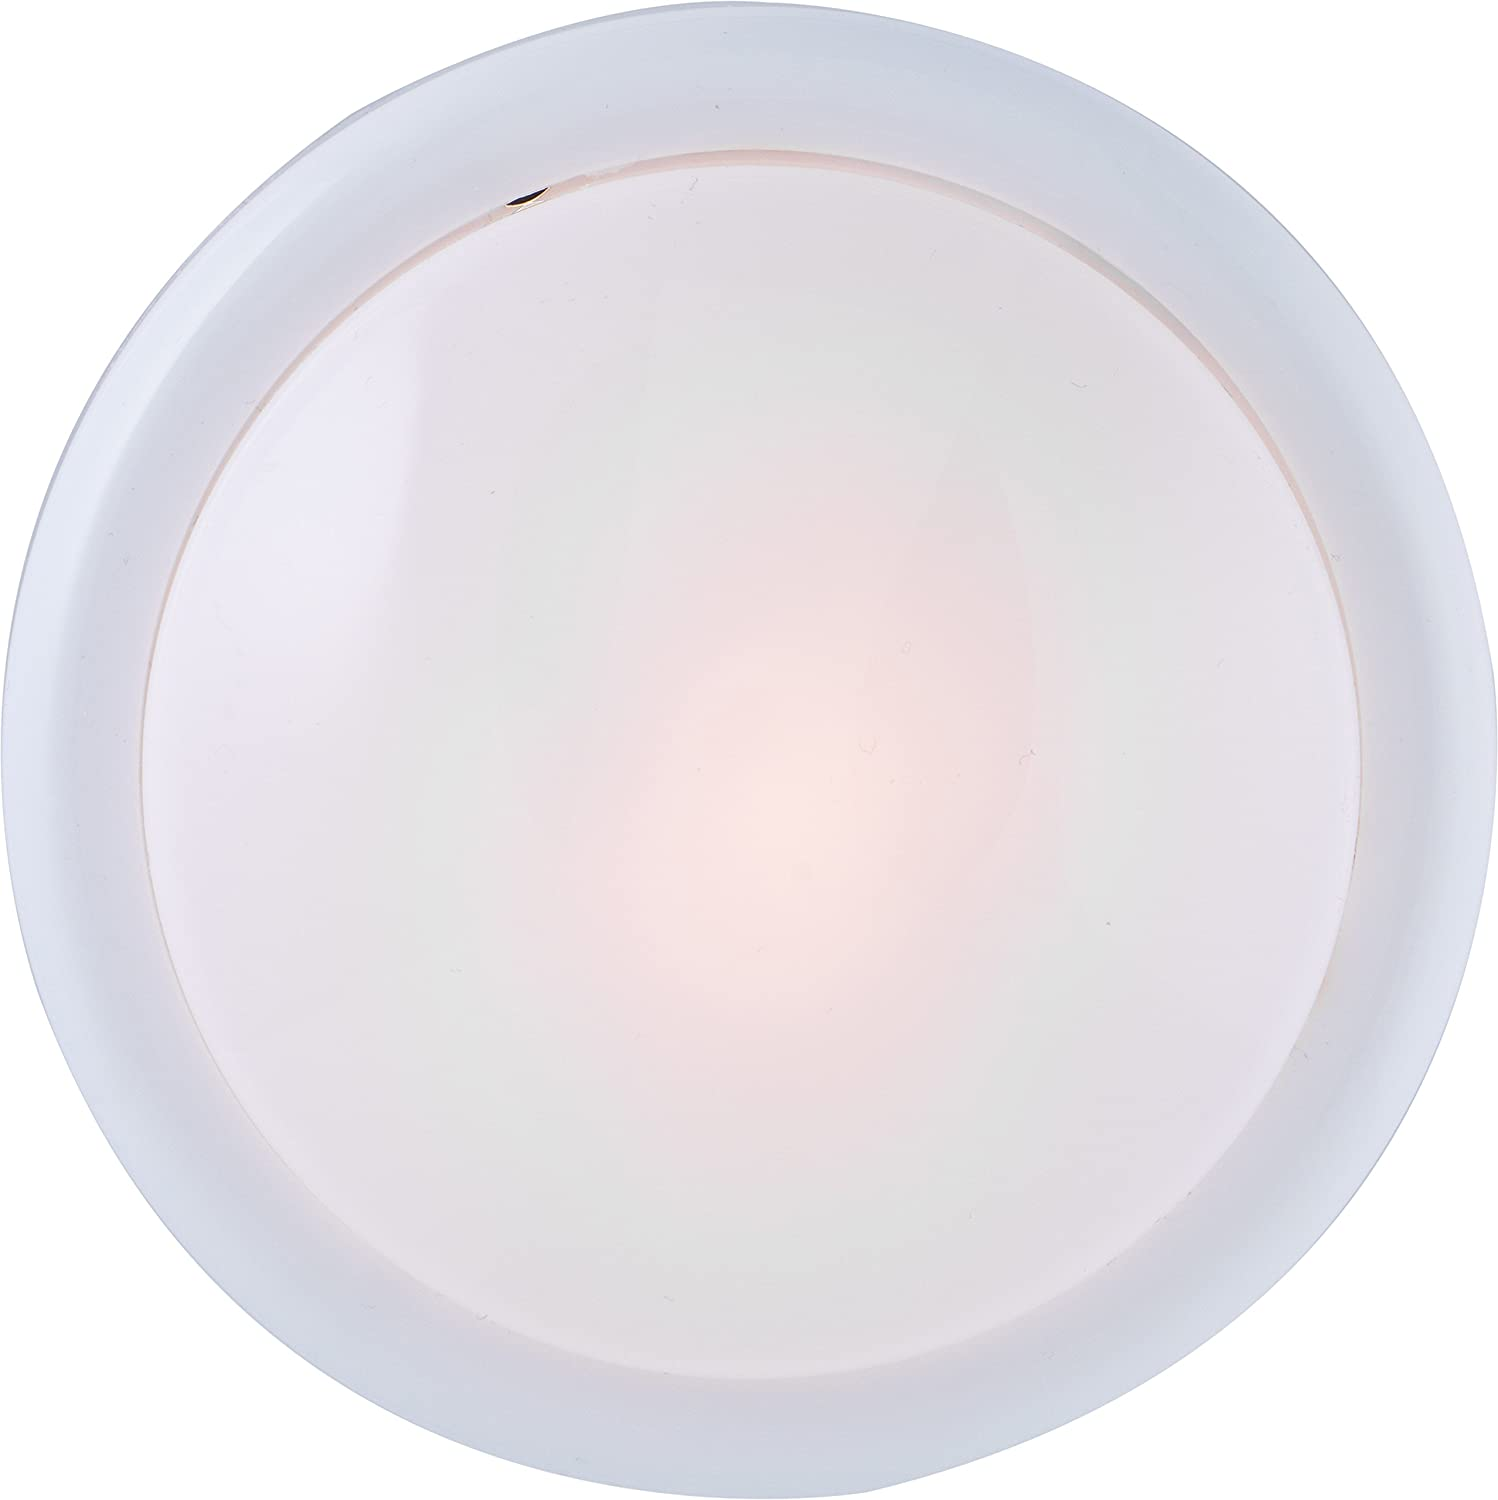 GE Mini Touch Light, Battery Operated, Warm White Incandescent, On/Off Push Button on Lens, Key Hole Mount, Portable, Ideal for Entryway, Door, Bathroom, Closet, Cabinet, Garage, Attic and more, 55219.